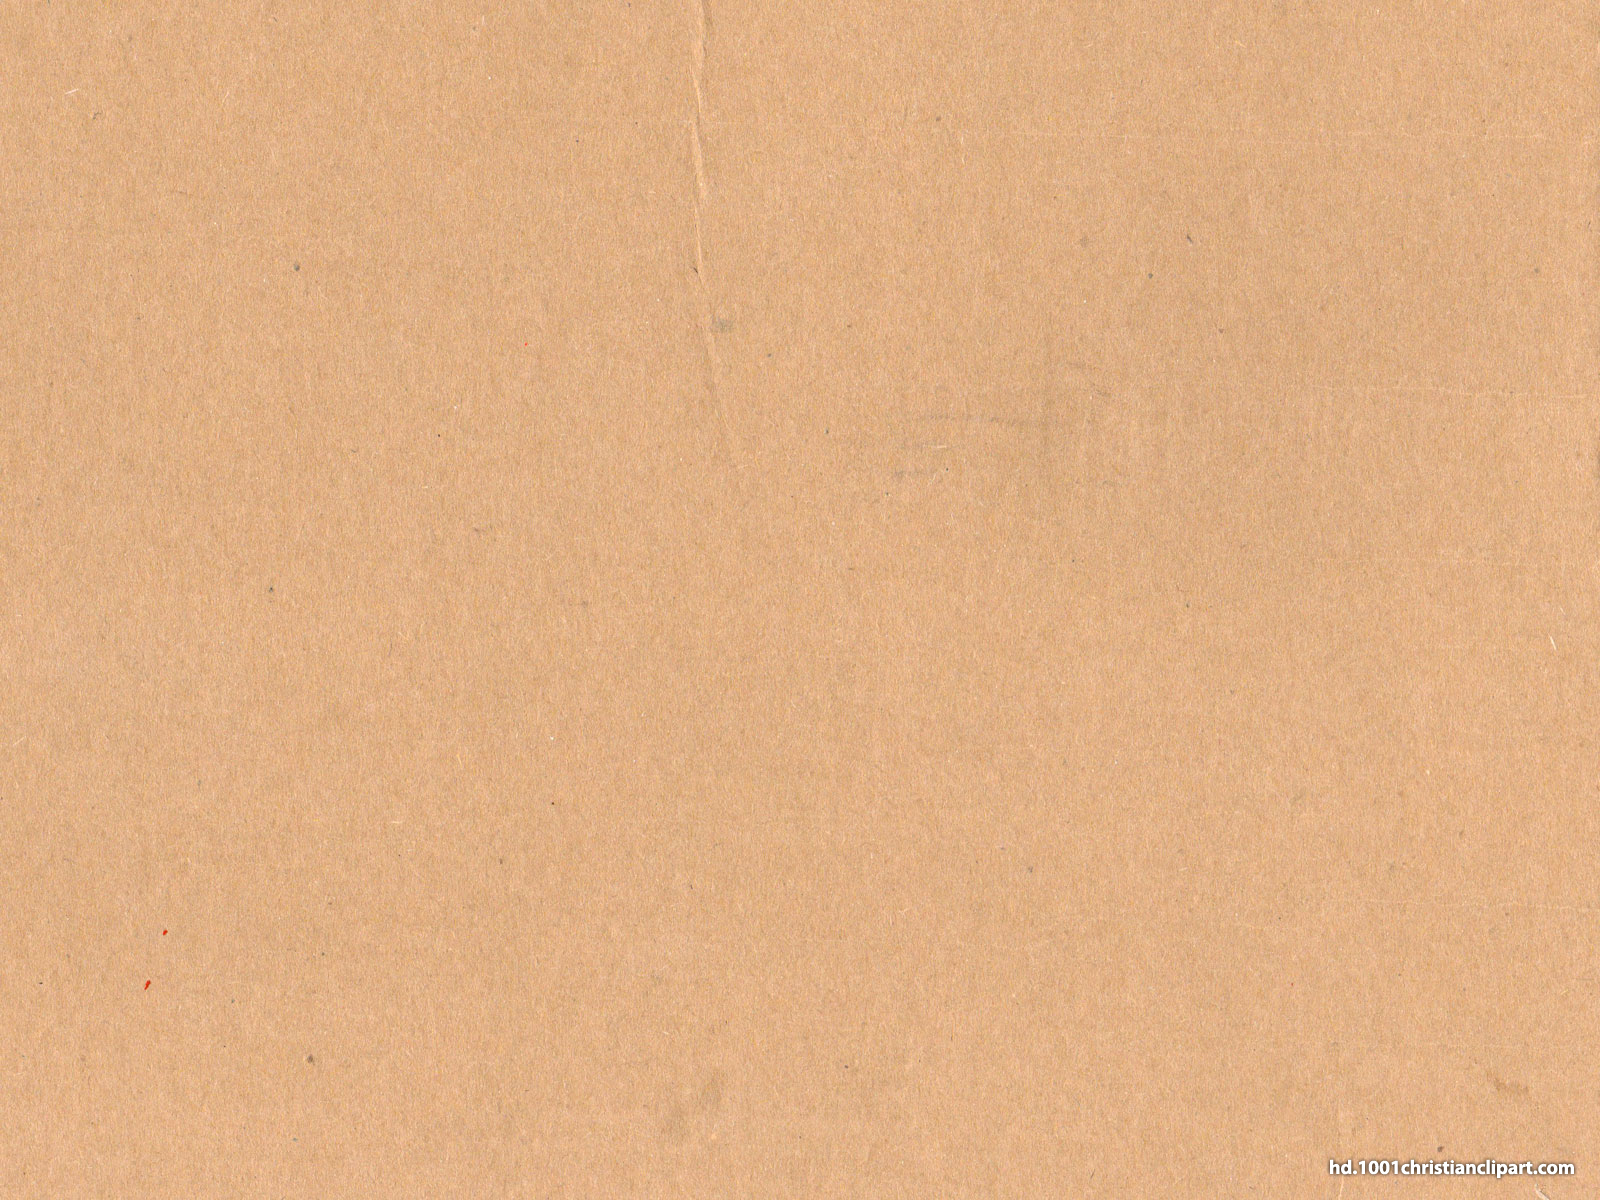 Cardboard Background HD